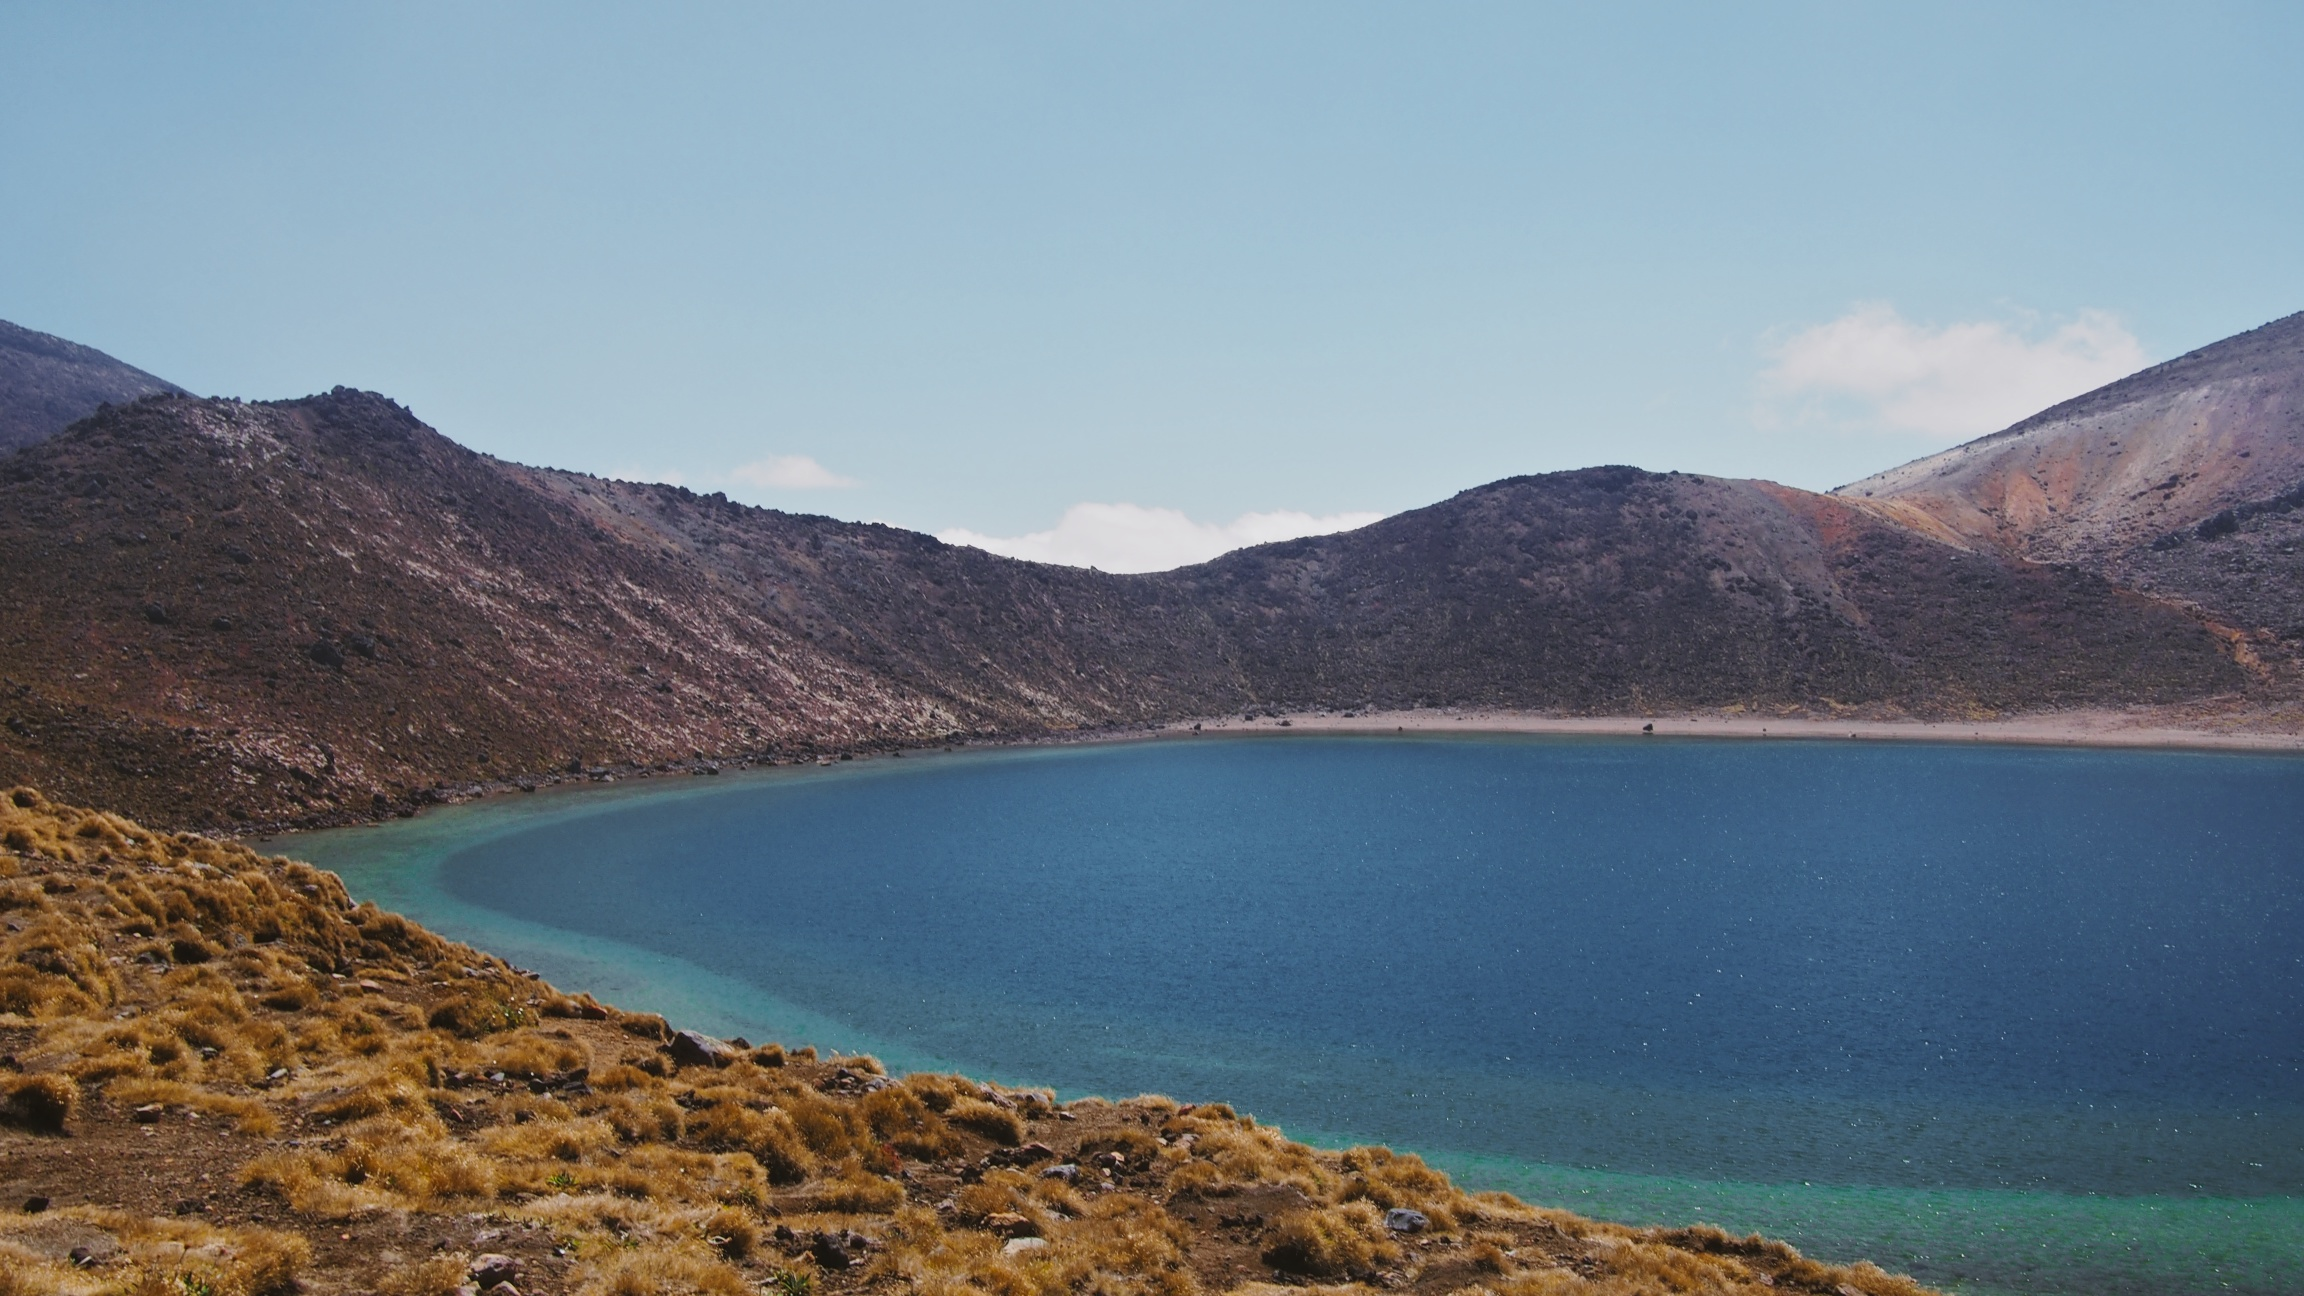 A close-up of the Blue Lake we saw from the summit of Mount Ngauruhoe.